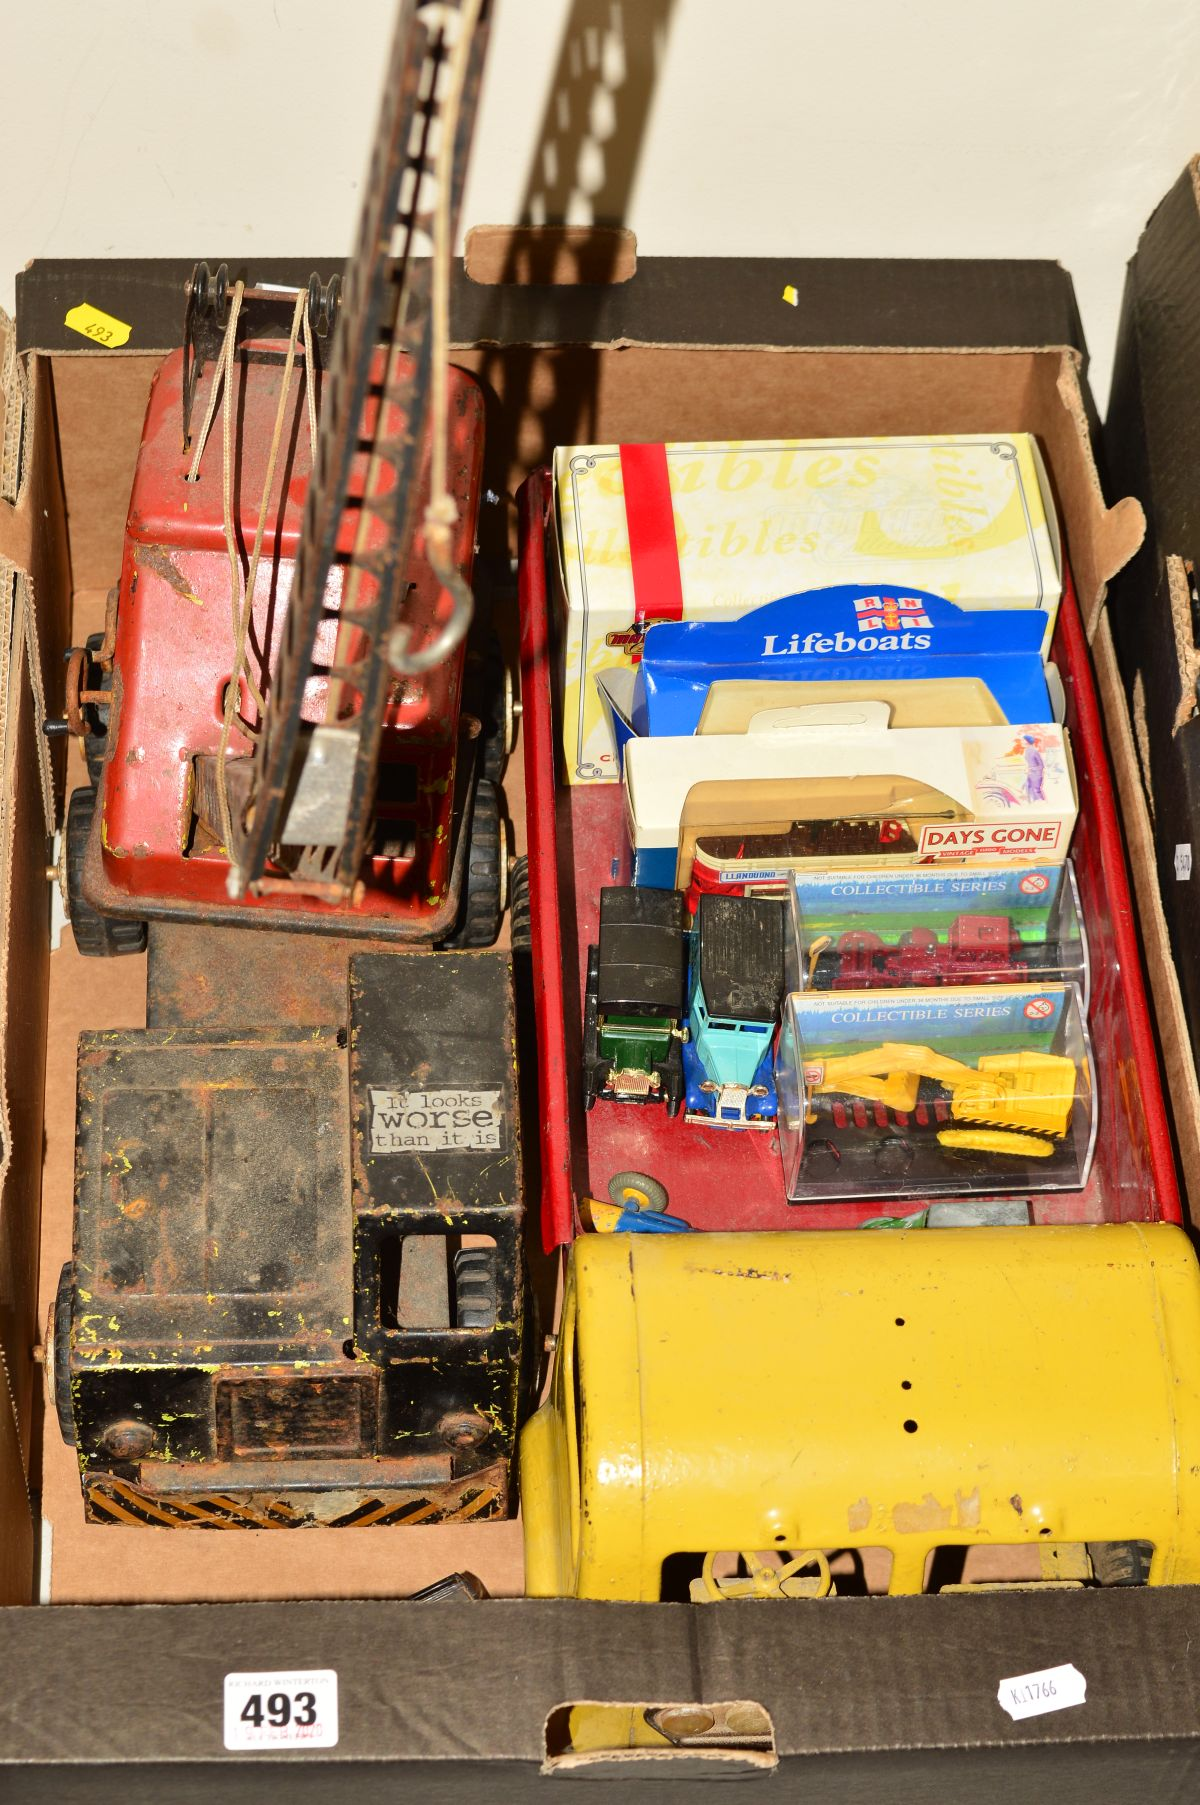 Lot 493 - A TRI-ANG PRESSED STEEL 300 SERIES TRUCK, repainted and missing bumper and other items from cab, a